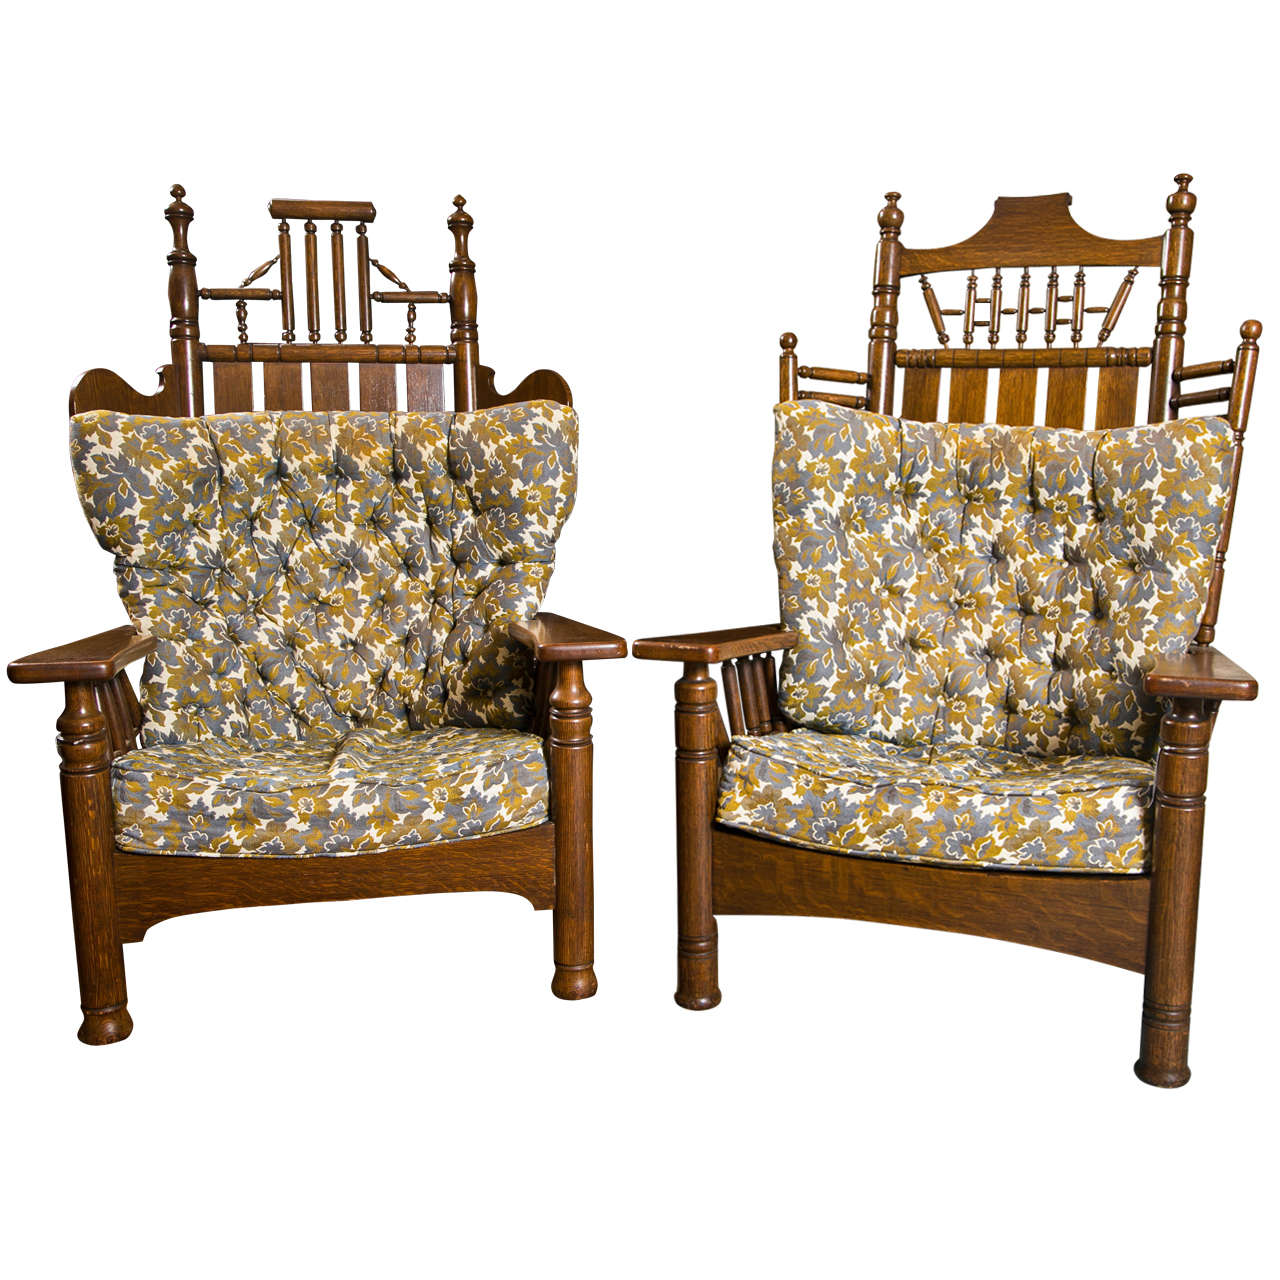 Queen Chairs Antique Oak Pair Of King And Queen Chairs For Sale At 1stdibs